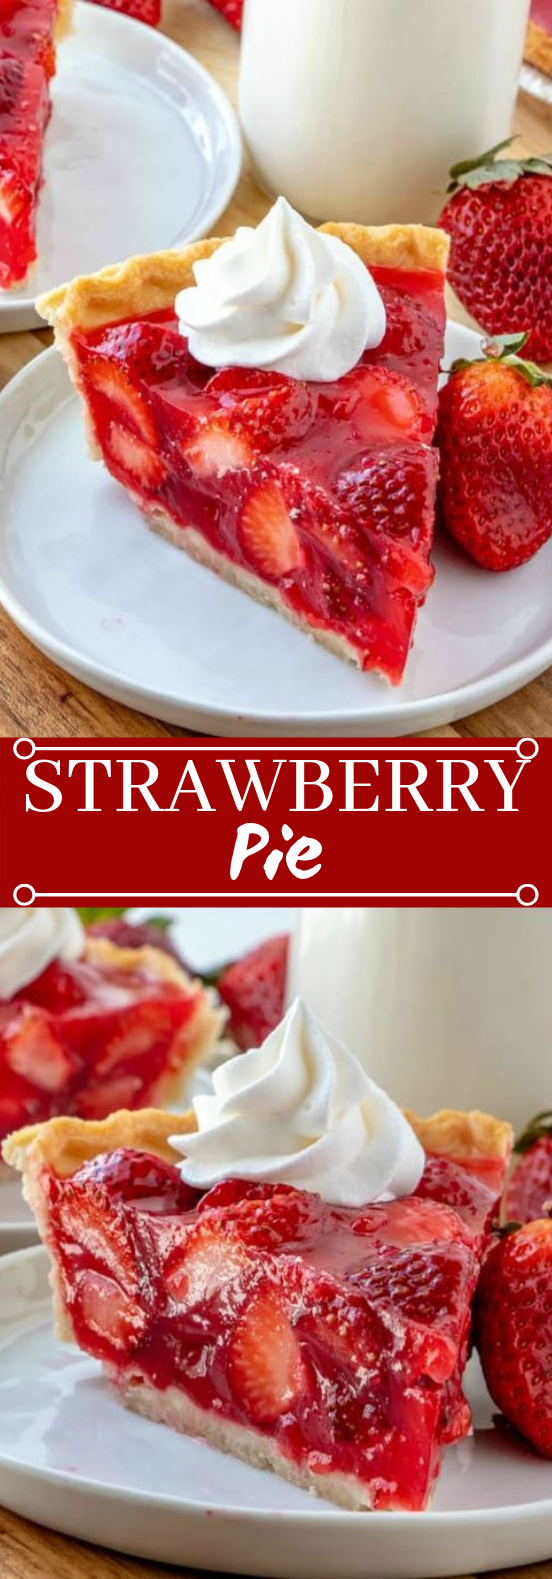 Strawberry Pie #desserts #strawberry